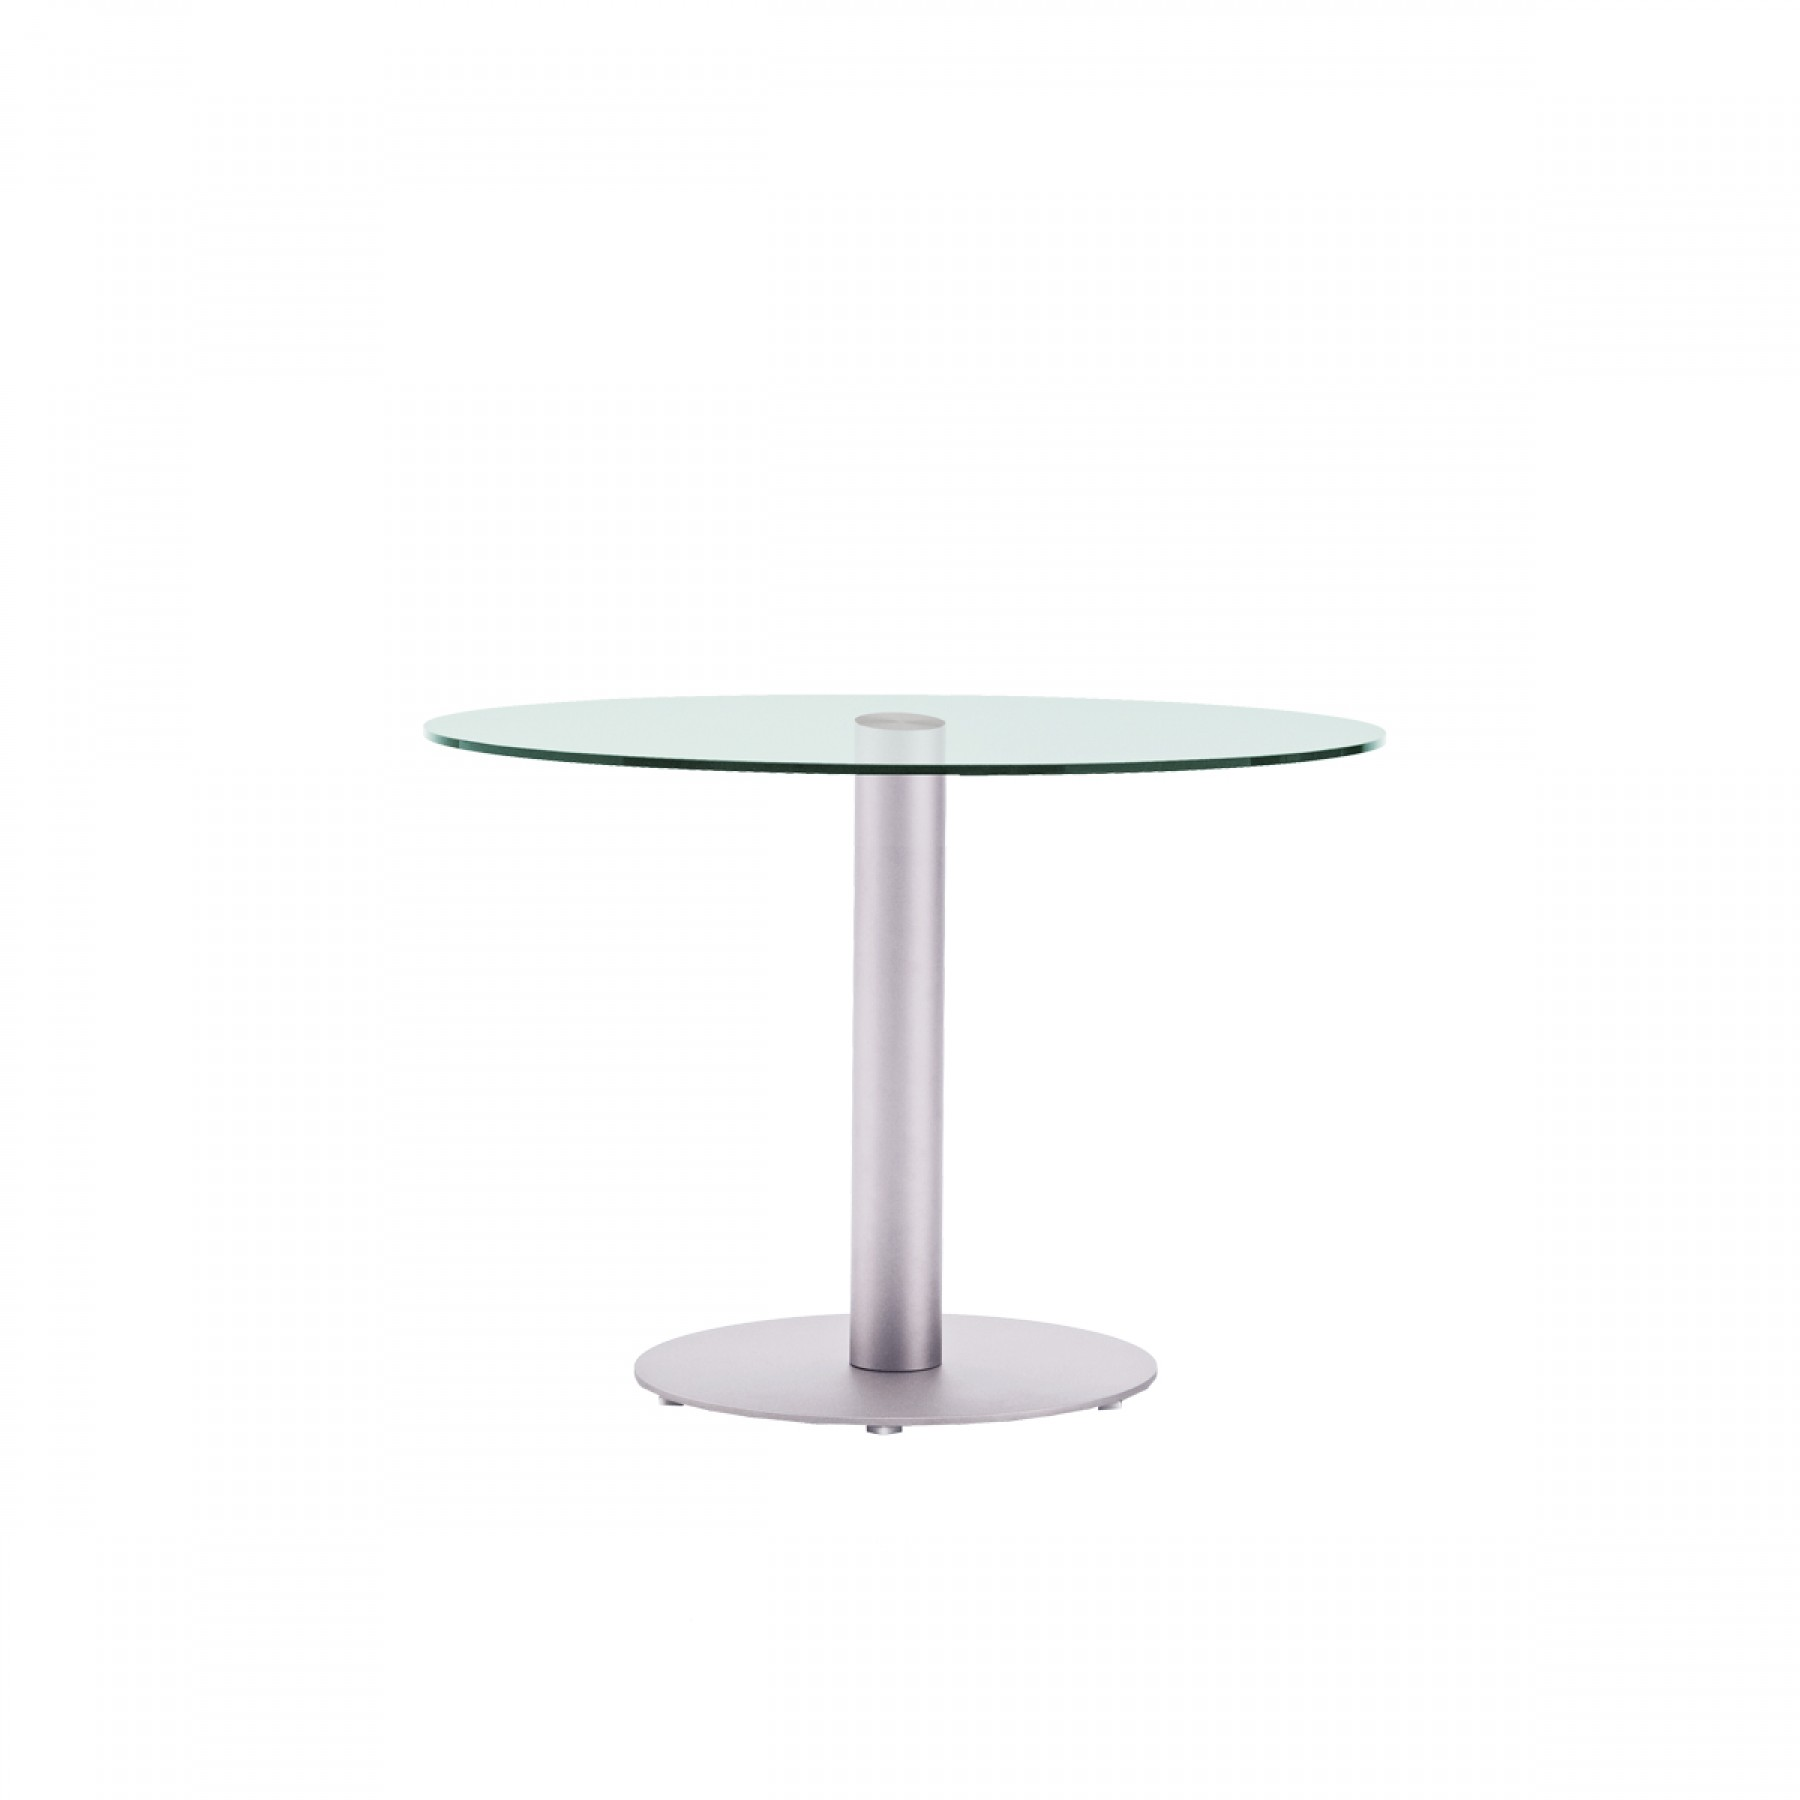 Hudson glass pedestal dining table beyond furniture for Pedestal dining table chairs